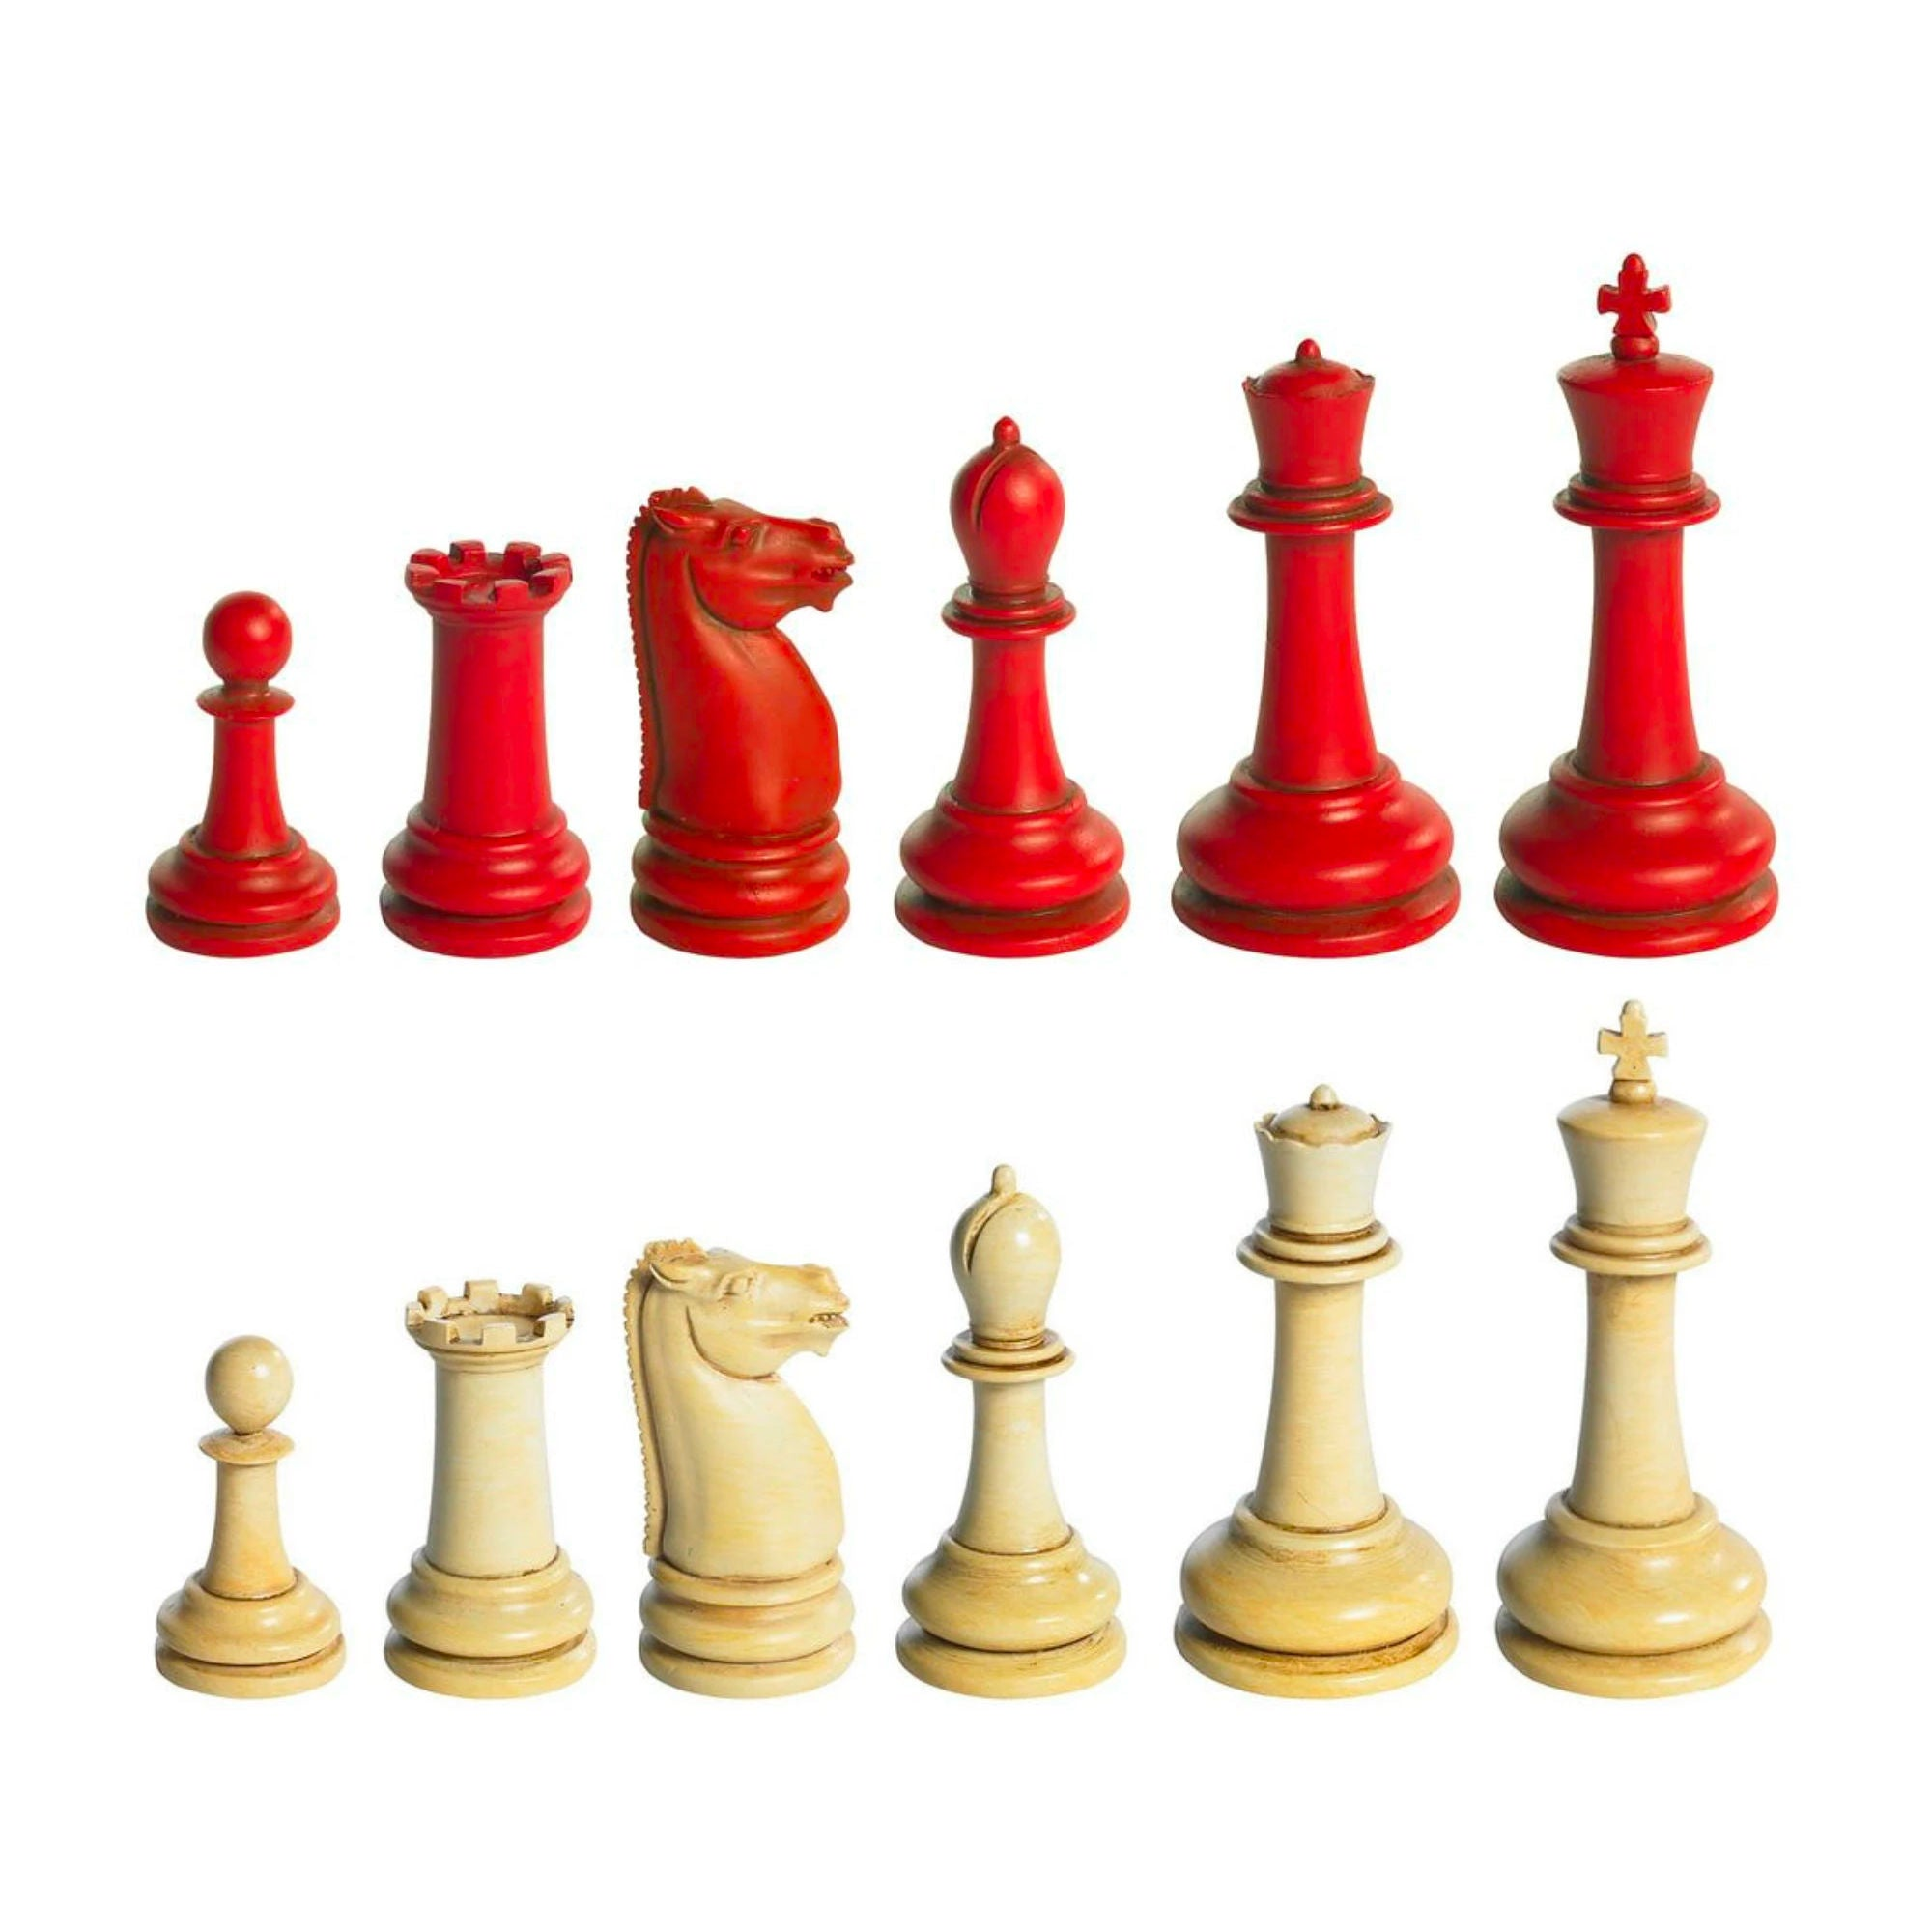 Authentic Models Classic Staunton Chess Set